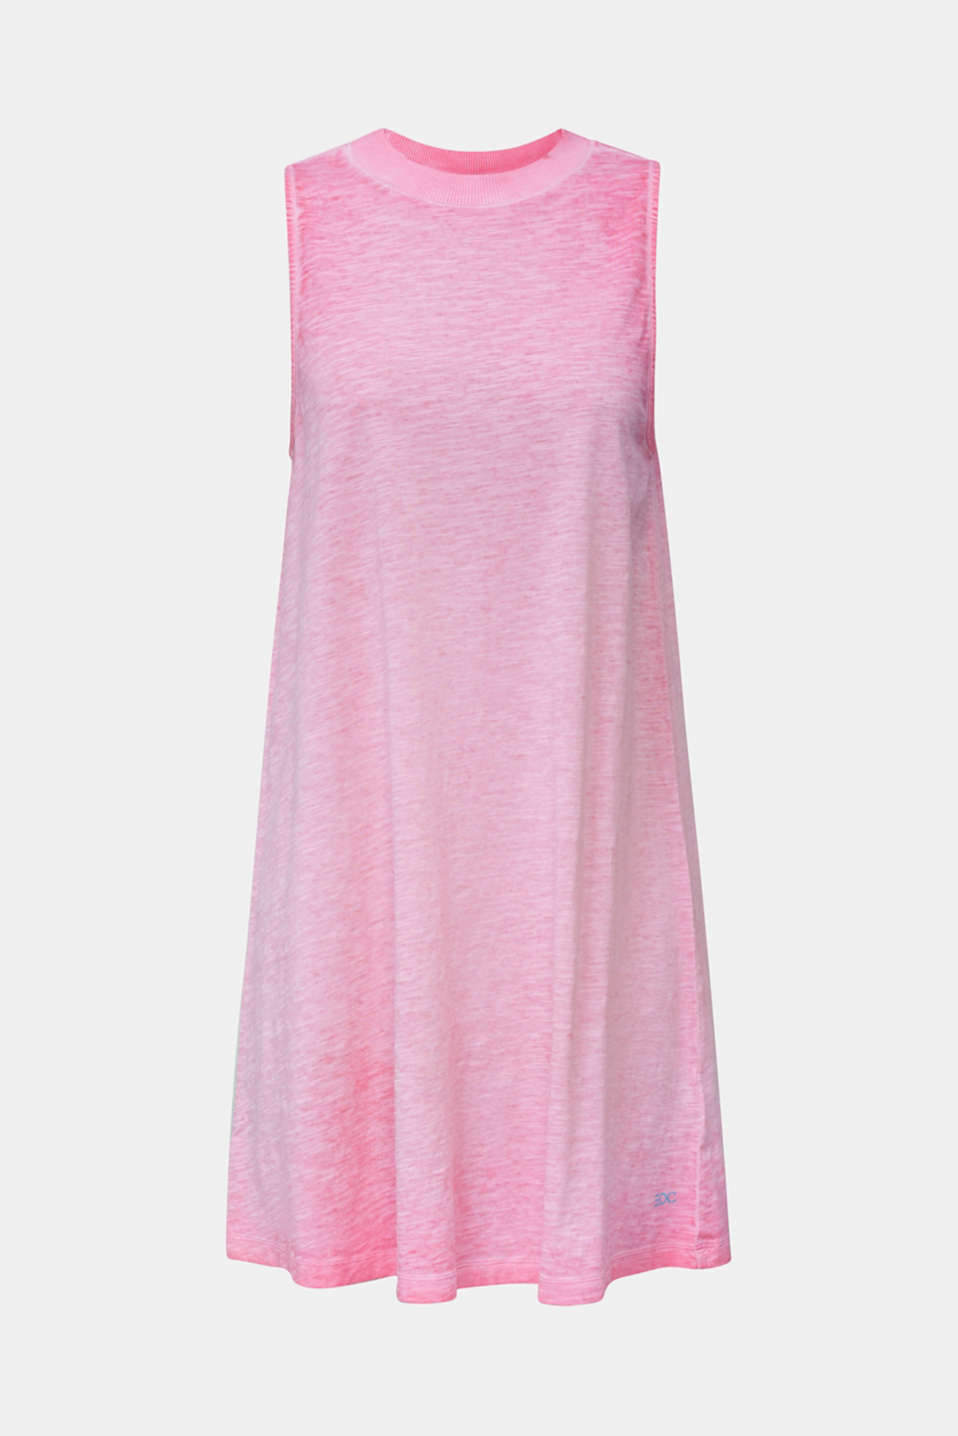 Cotton jersey dress, PINK FUCHSIA, detail image number 5